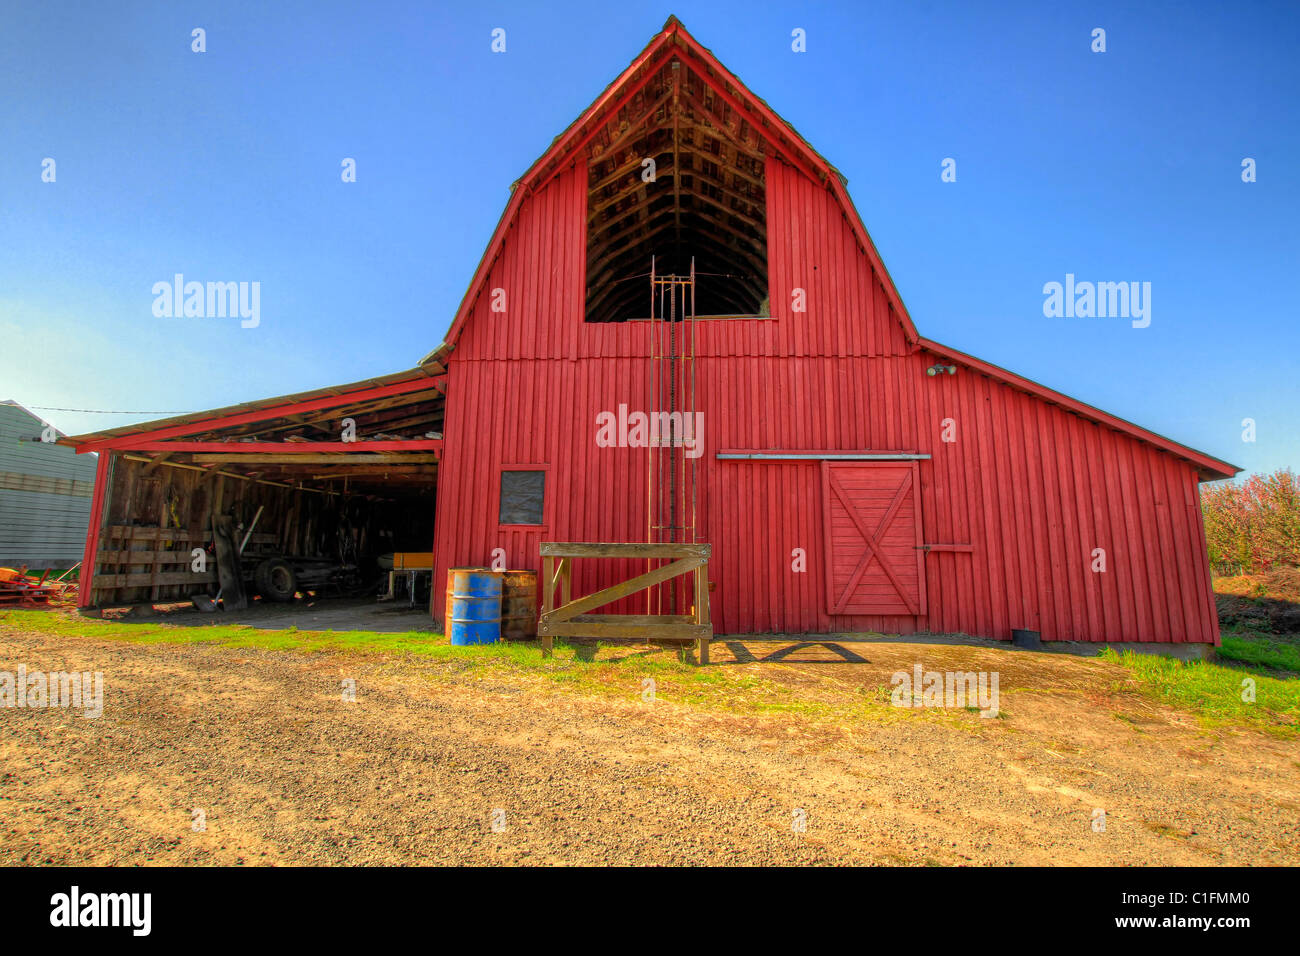 Red Barn in Oregon Agriculture Farmland Countryside - Stock Image